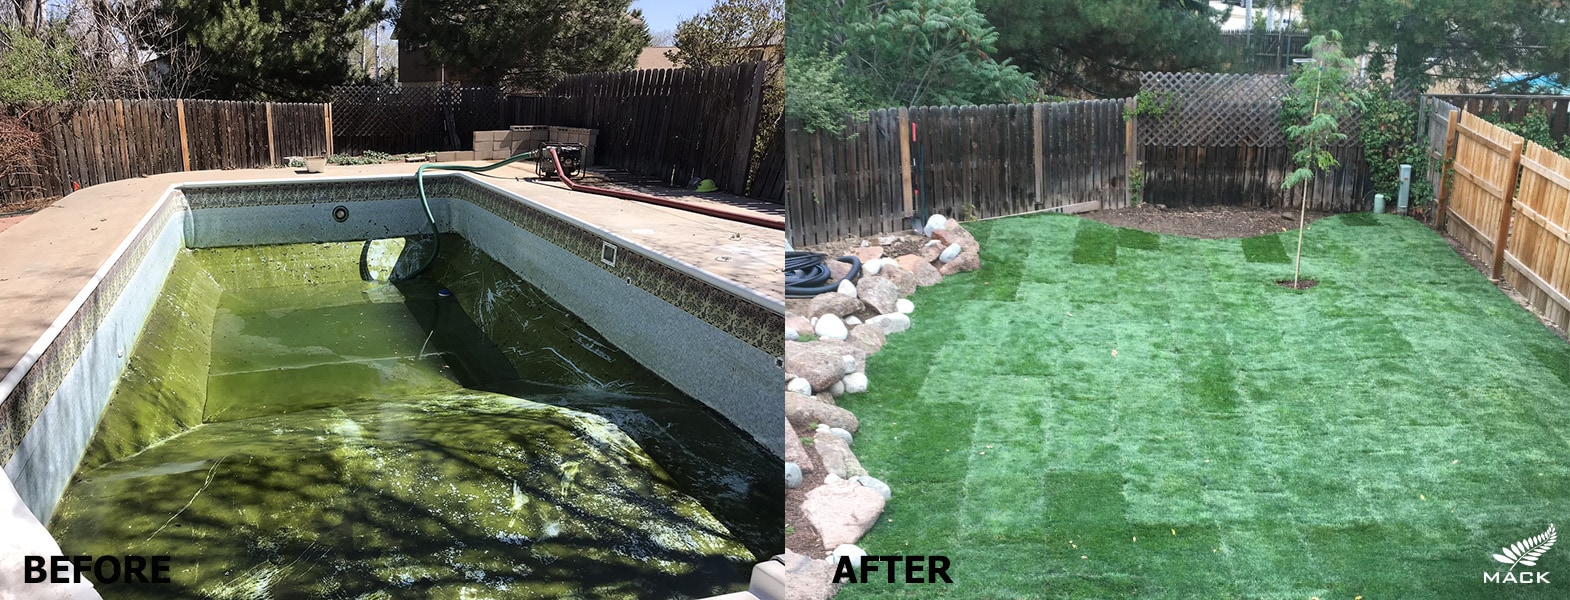 Mack Land LLC - Longmont, CO Pool Removal